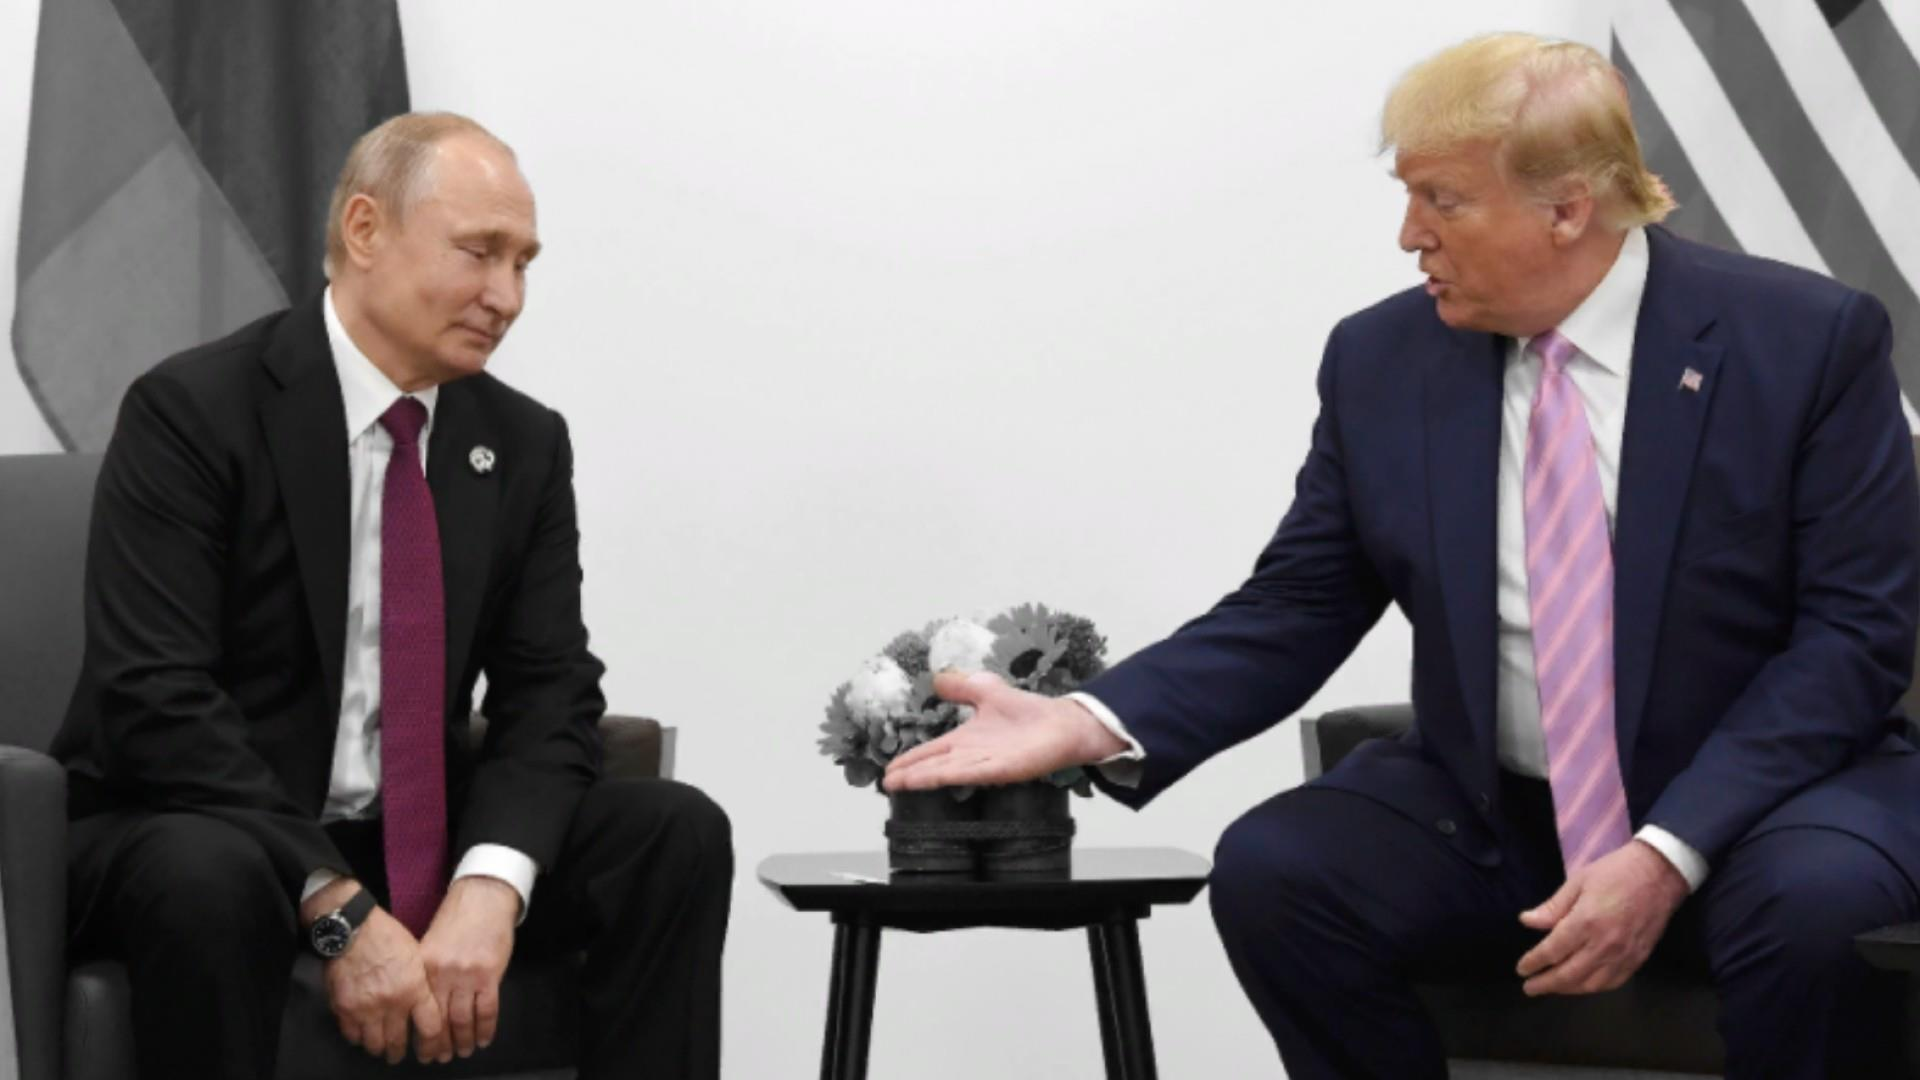 Trump jokes about 'fake news' with Putin who's had journalists killed